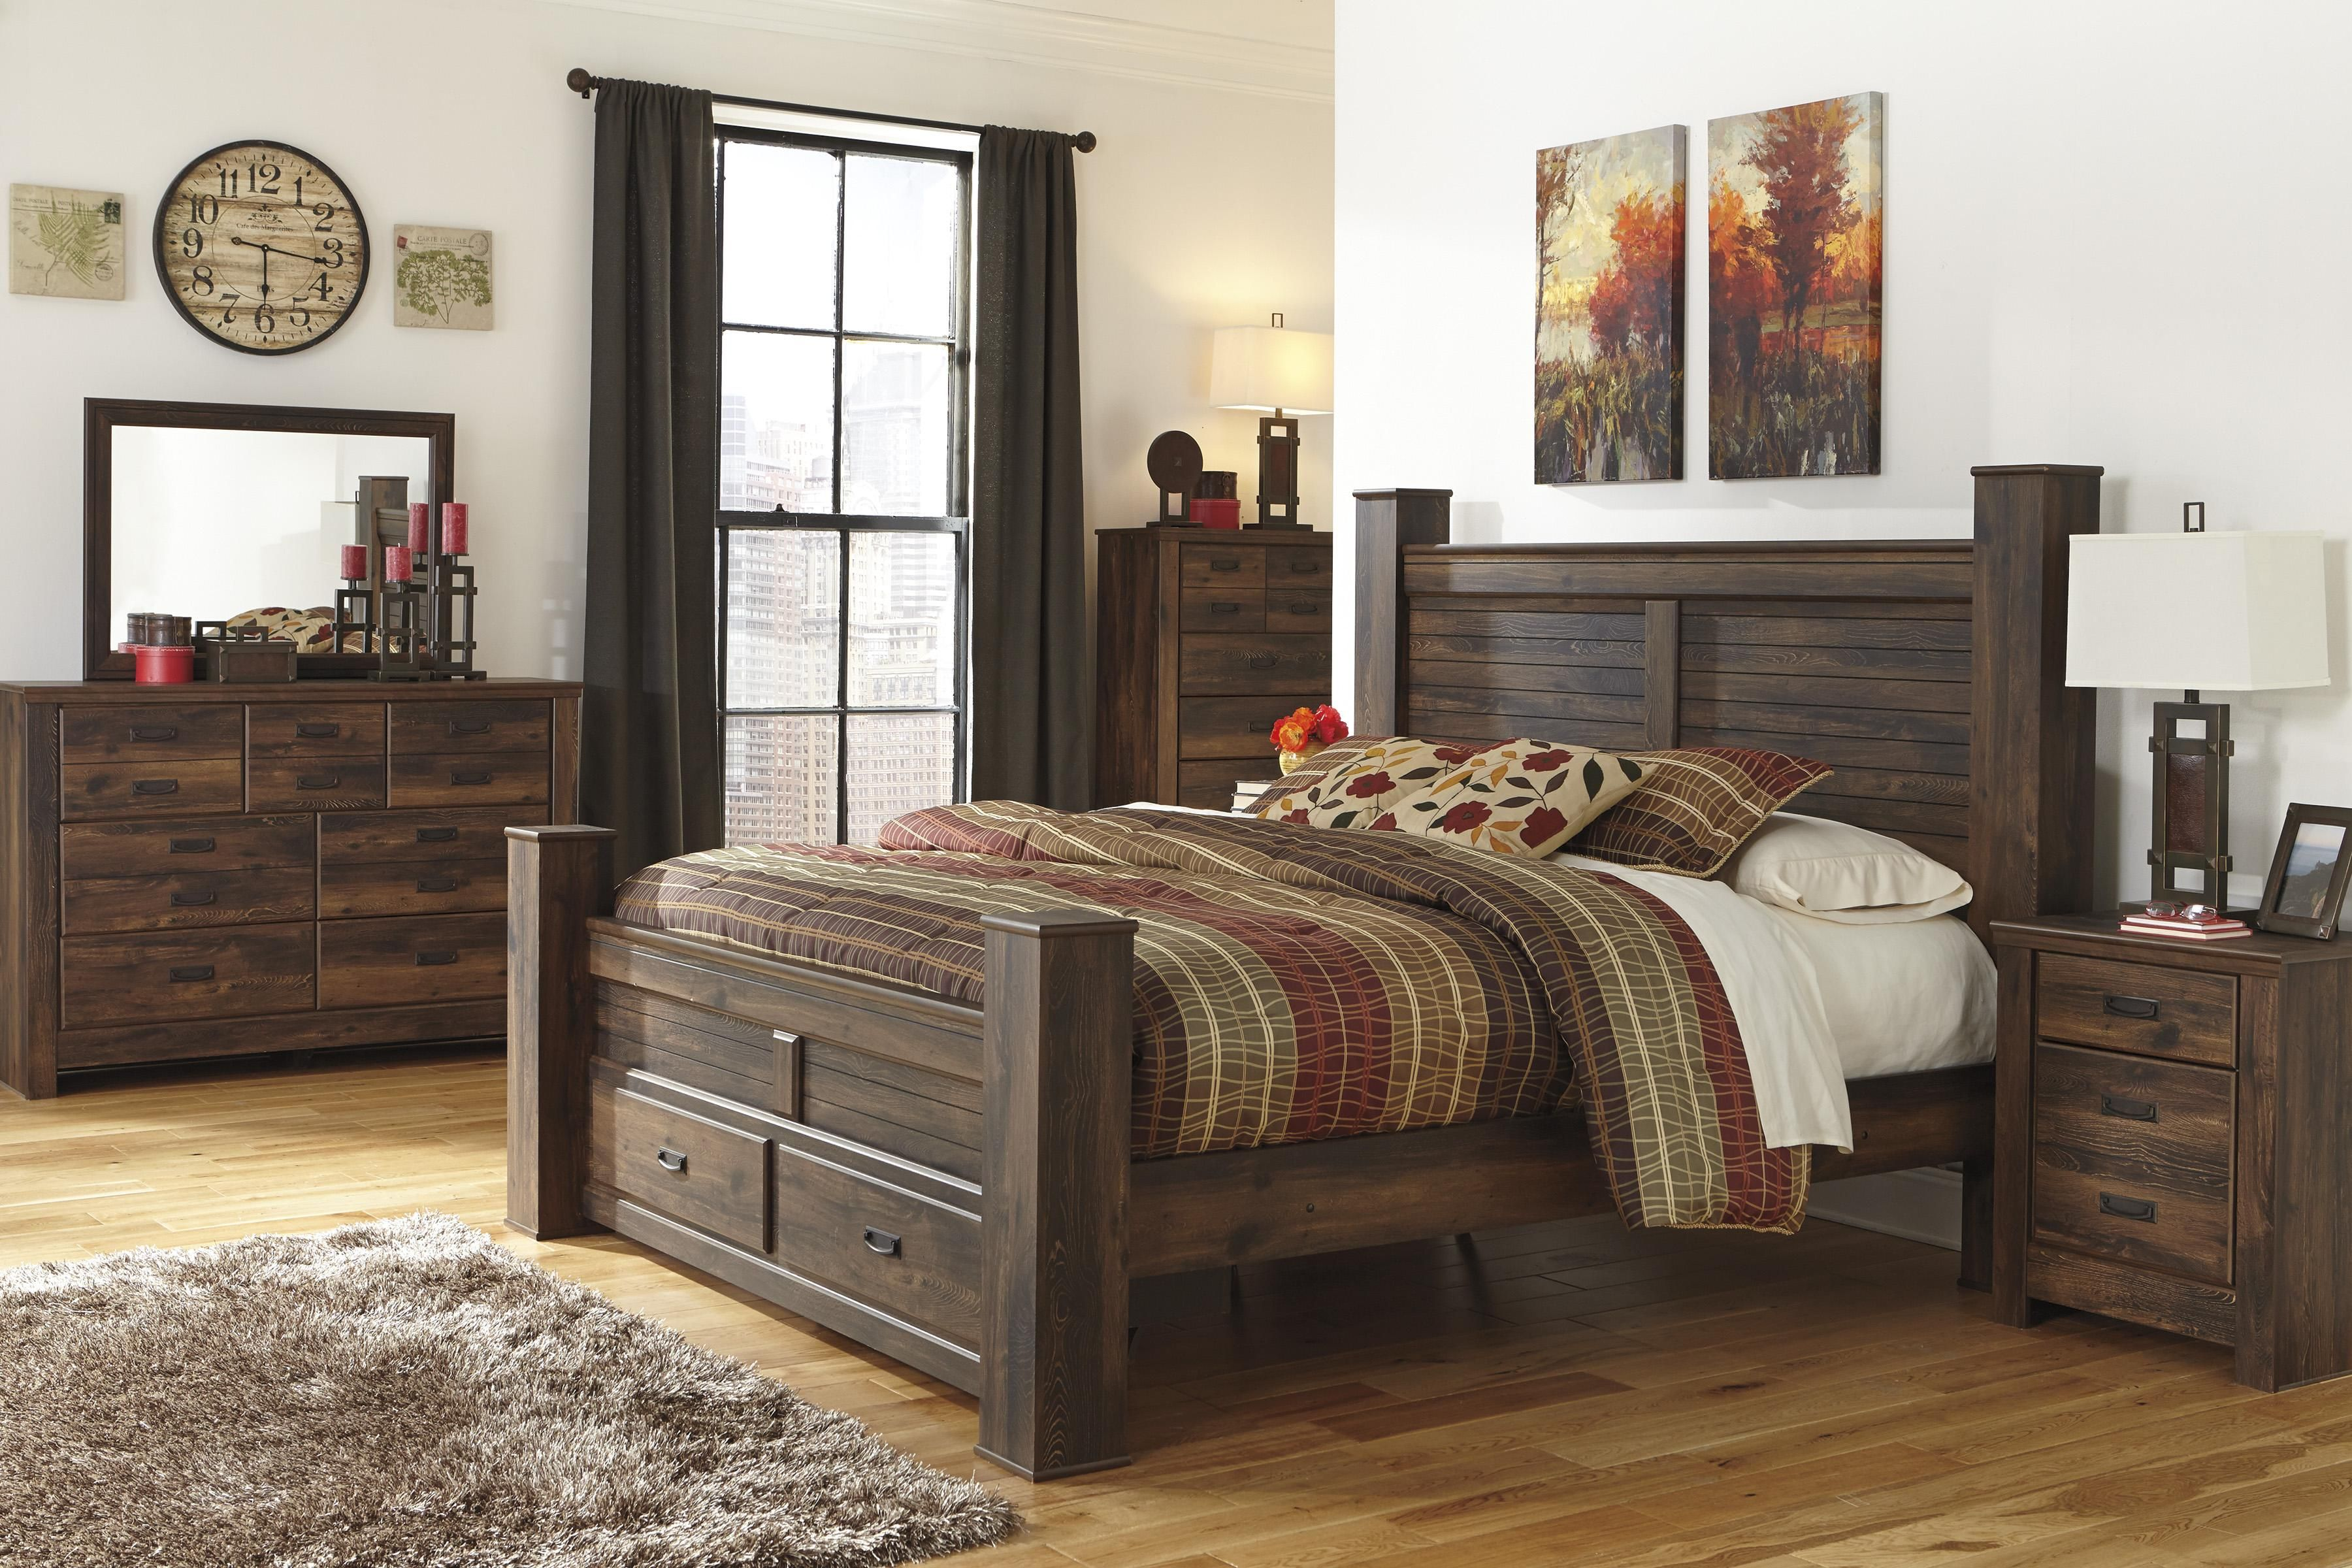 Signature Design By Ashley Quinden King Bedroom Group Beck S Furniture Bedroom Group